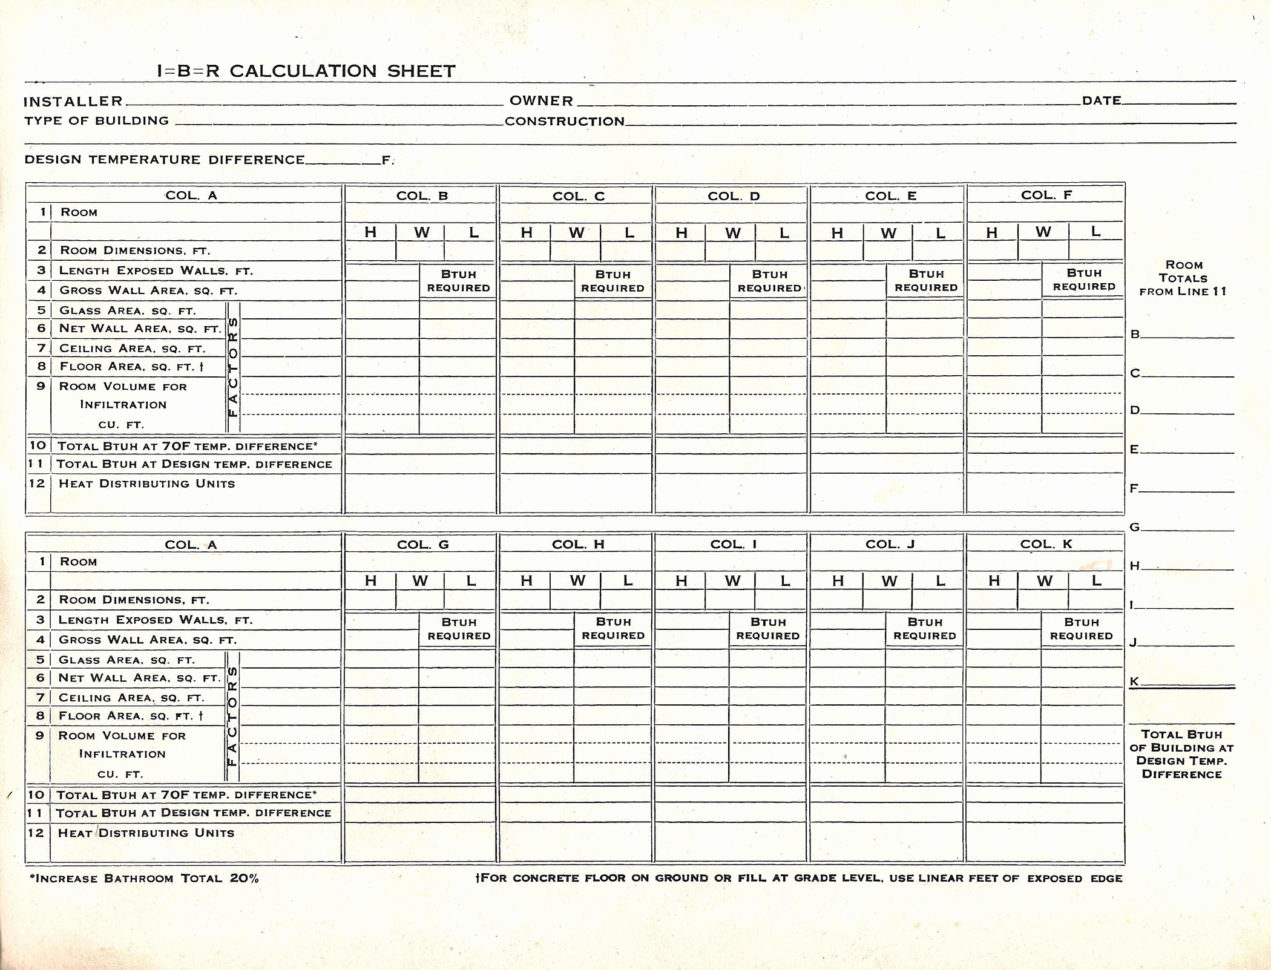 Manual J Load Calculation Spreadsheet For Example Of Hvac